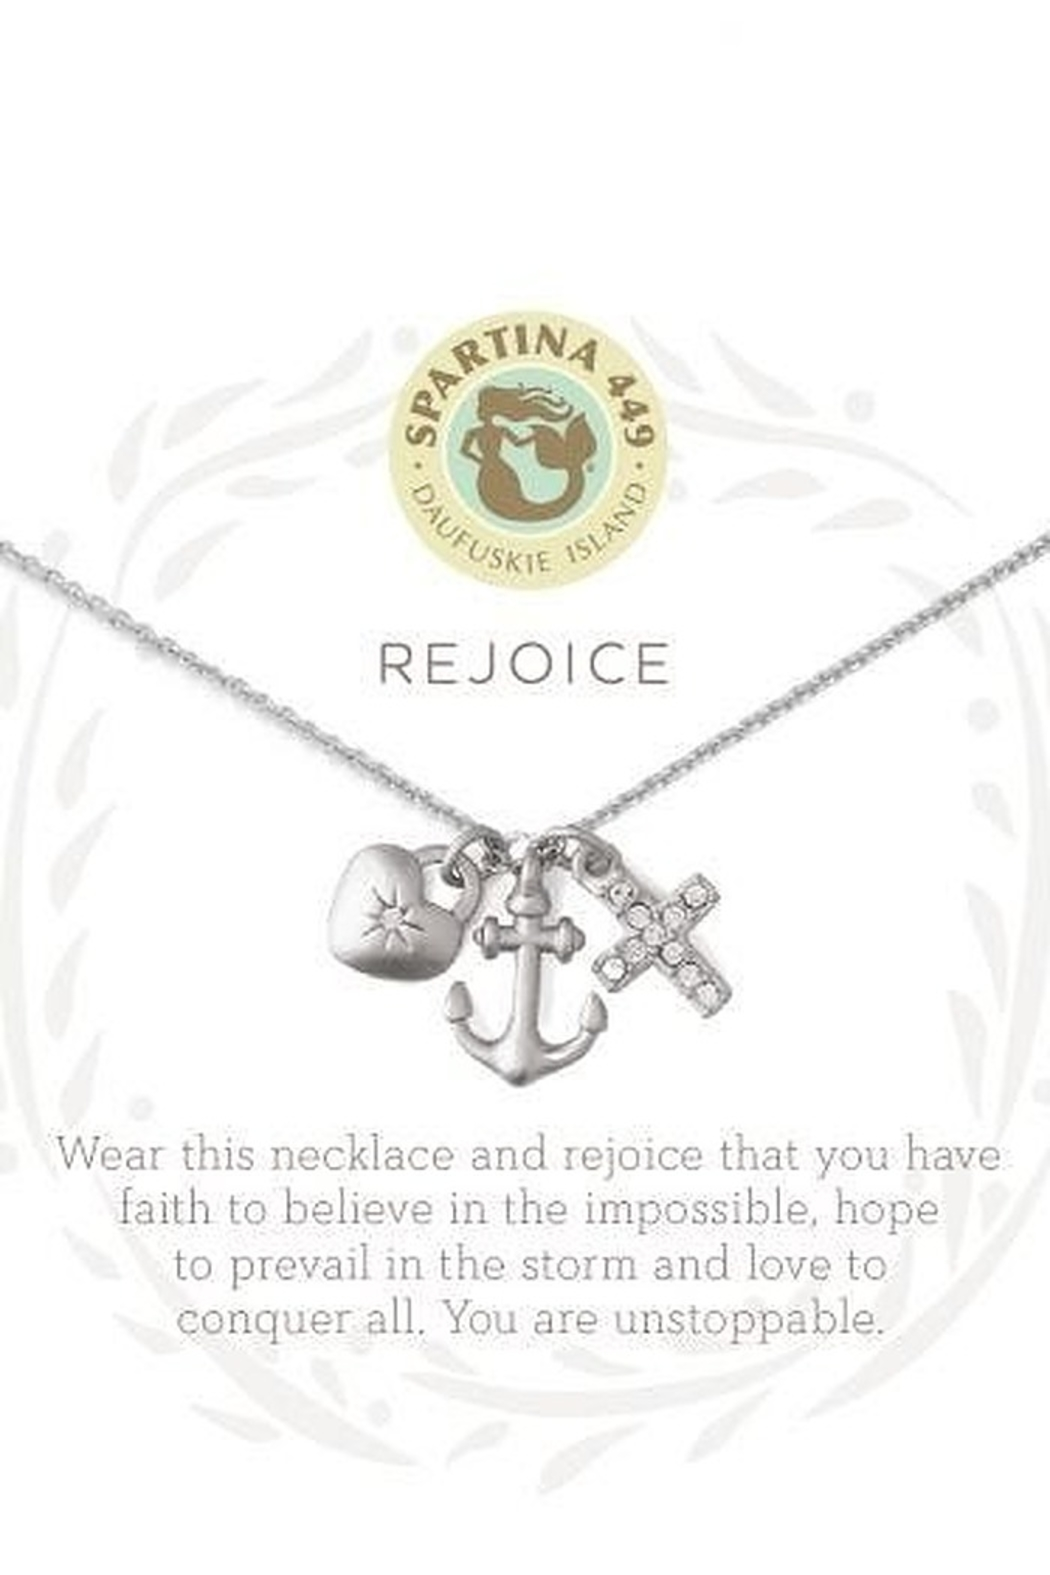 Spartina 449 Sea La Vie Rejoice Necklace 18' - Main Image